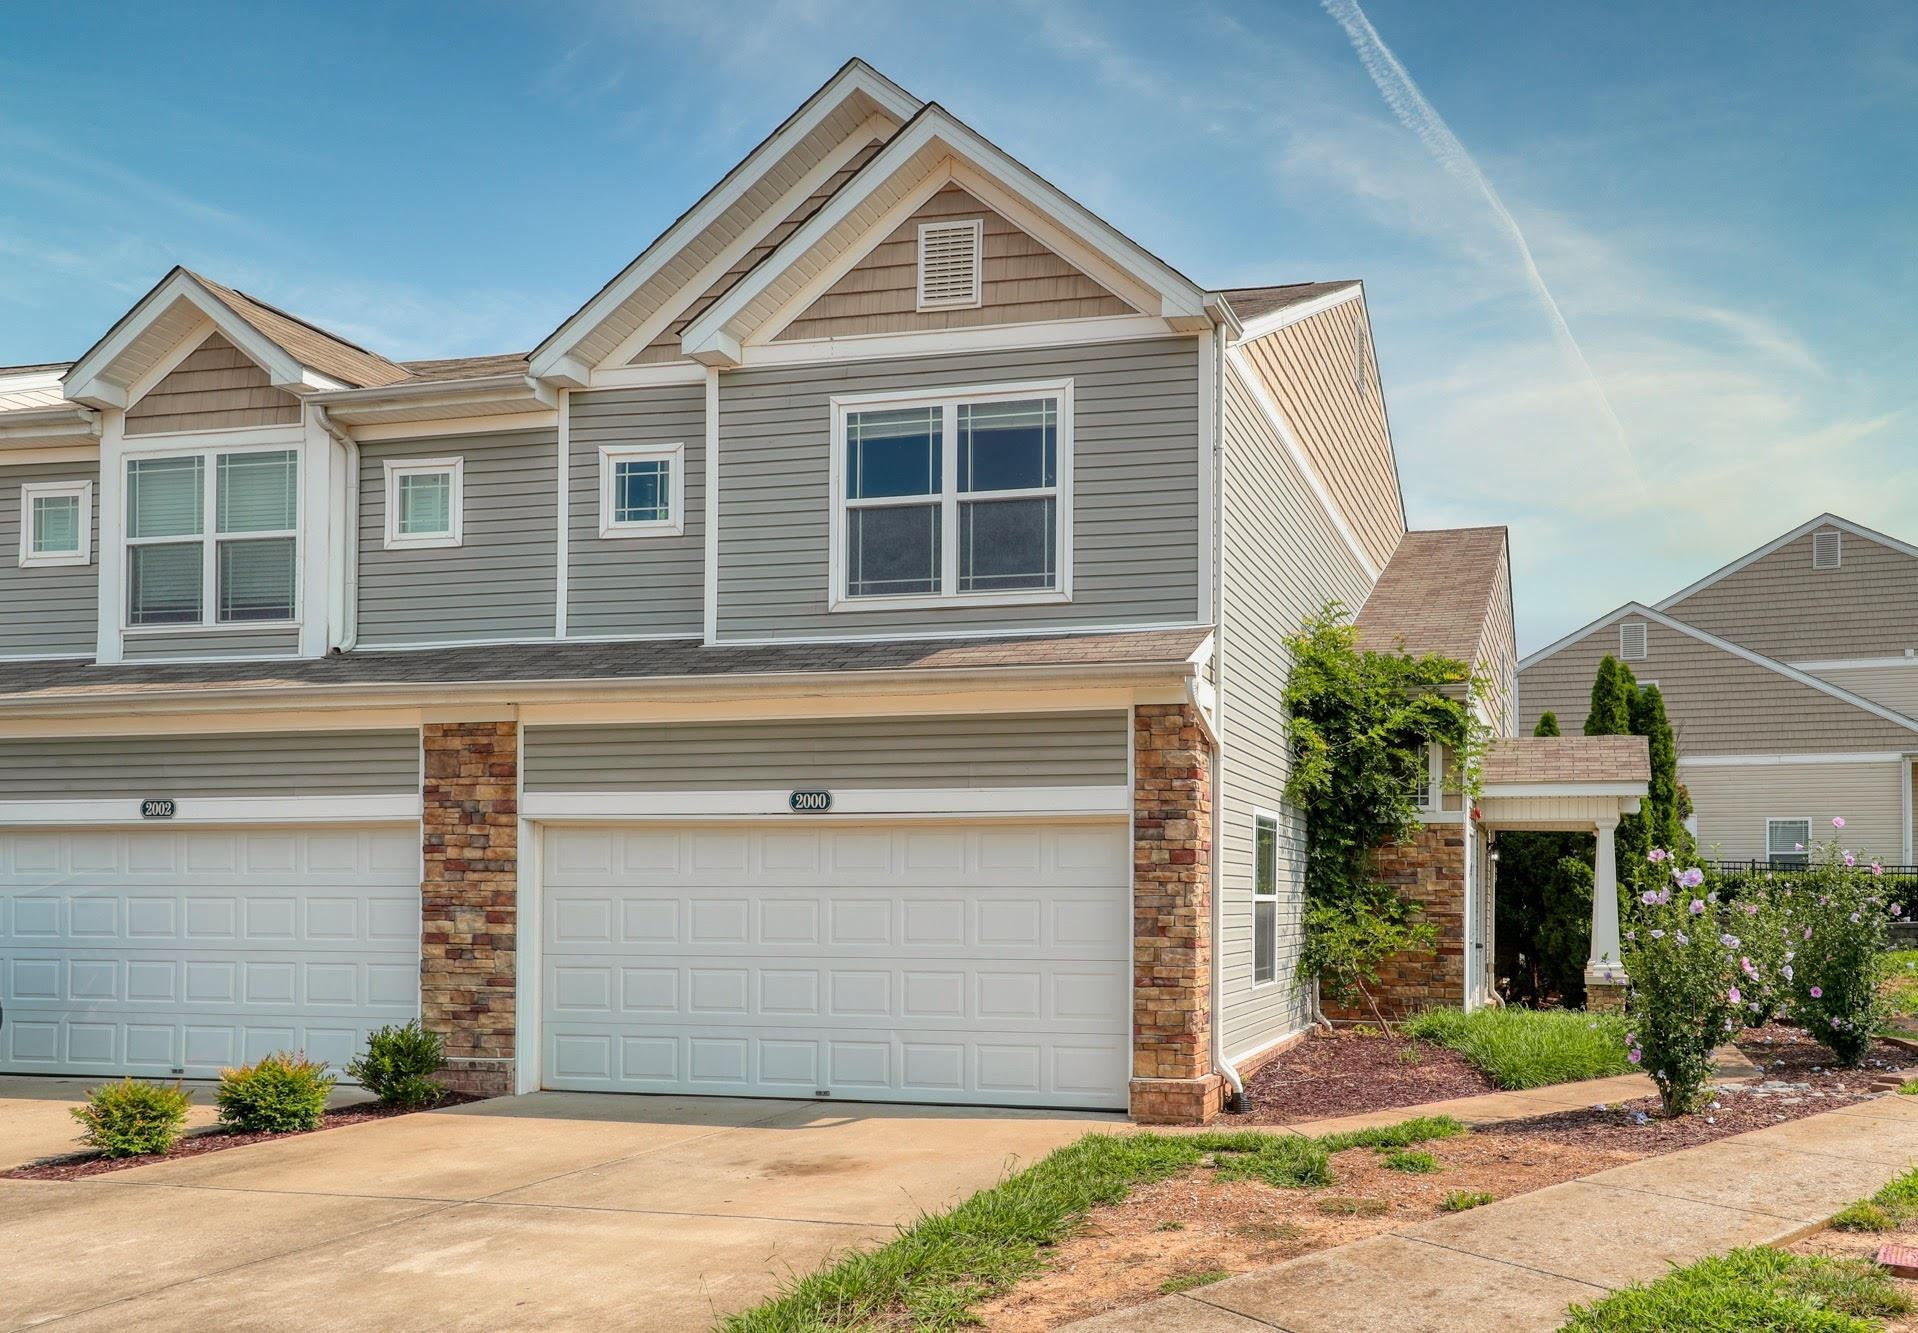 Photo of 2000 Lavender Ct, Spring Hill, TN 37174 (MLS # 2274550)